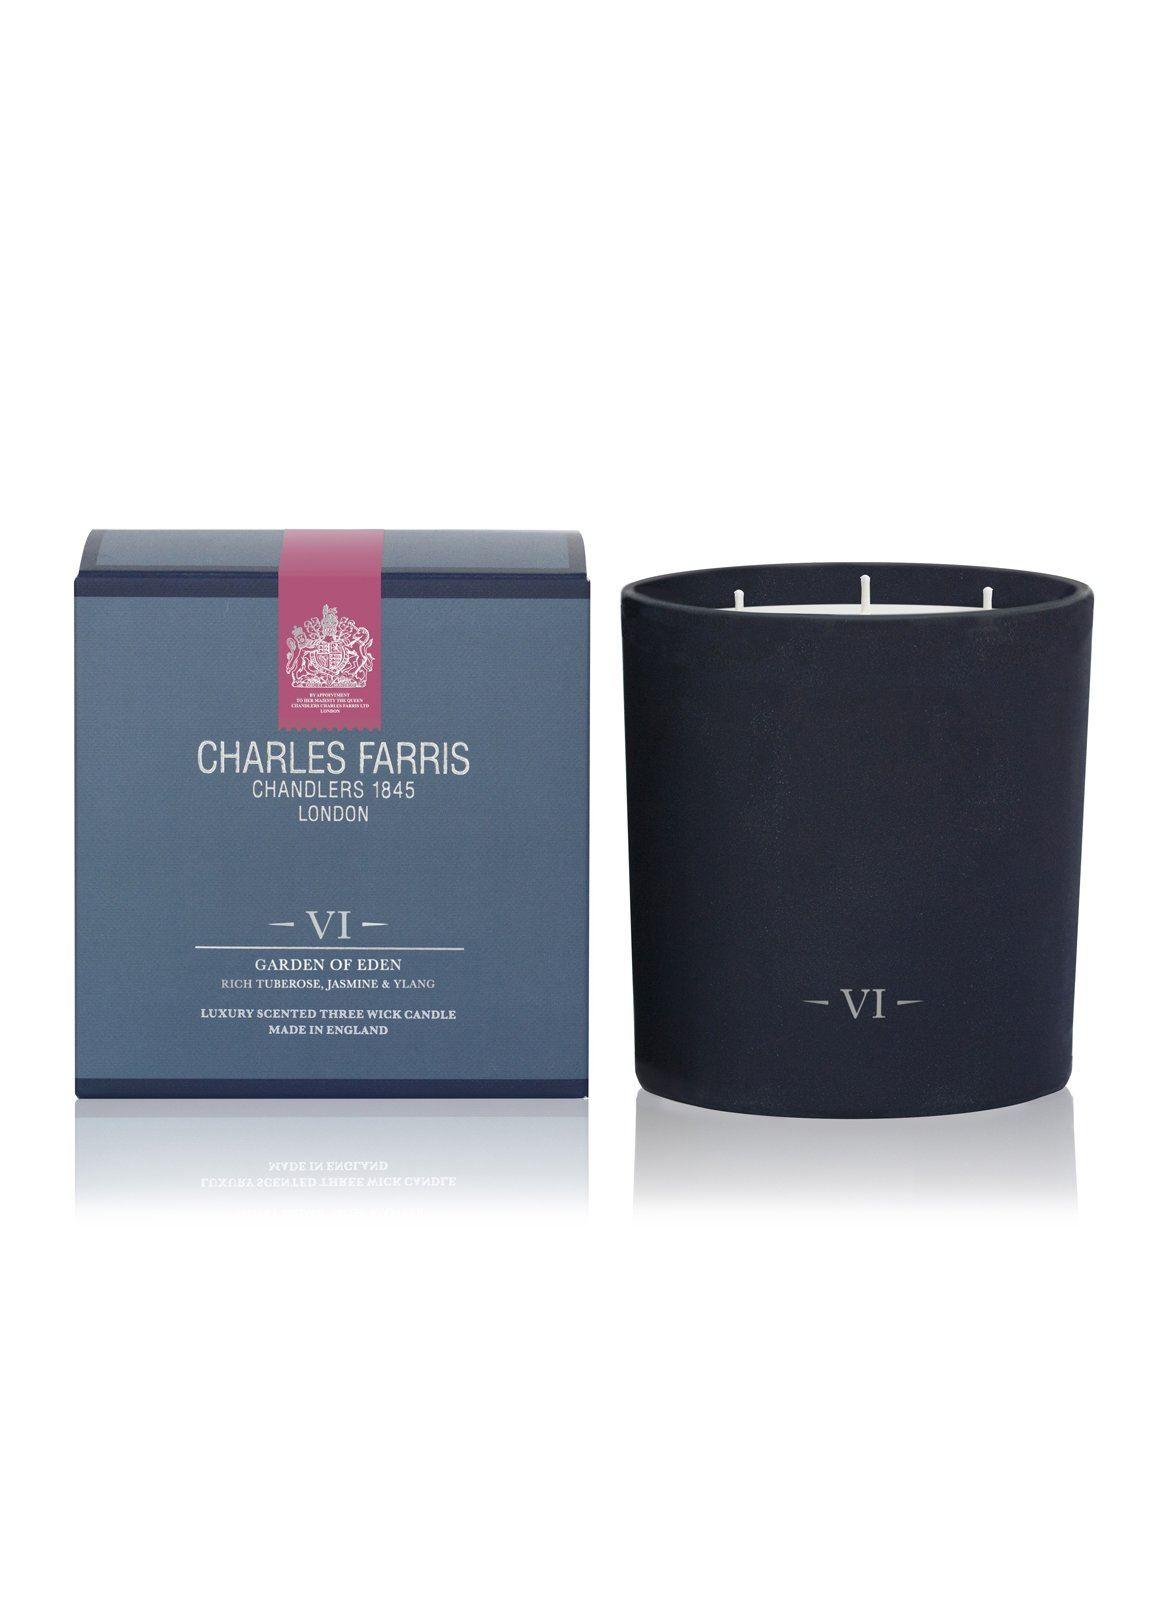 Charles Farris Garden of Eden 3 Wick Candle